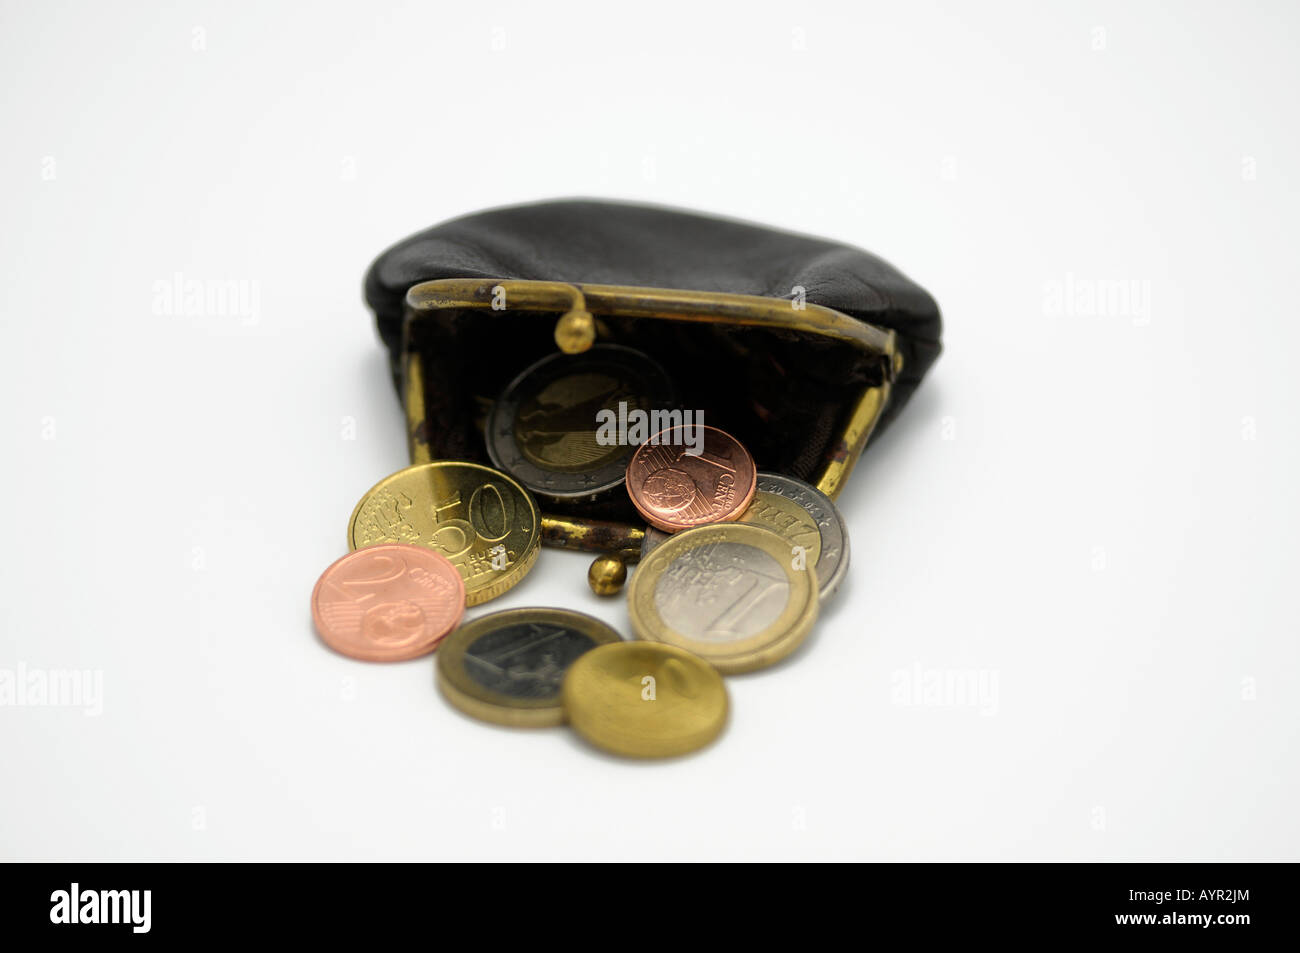 Euro coins falling out of a change purse - Stock Image